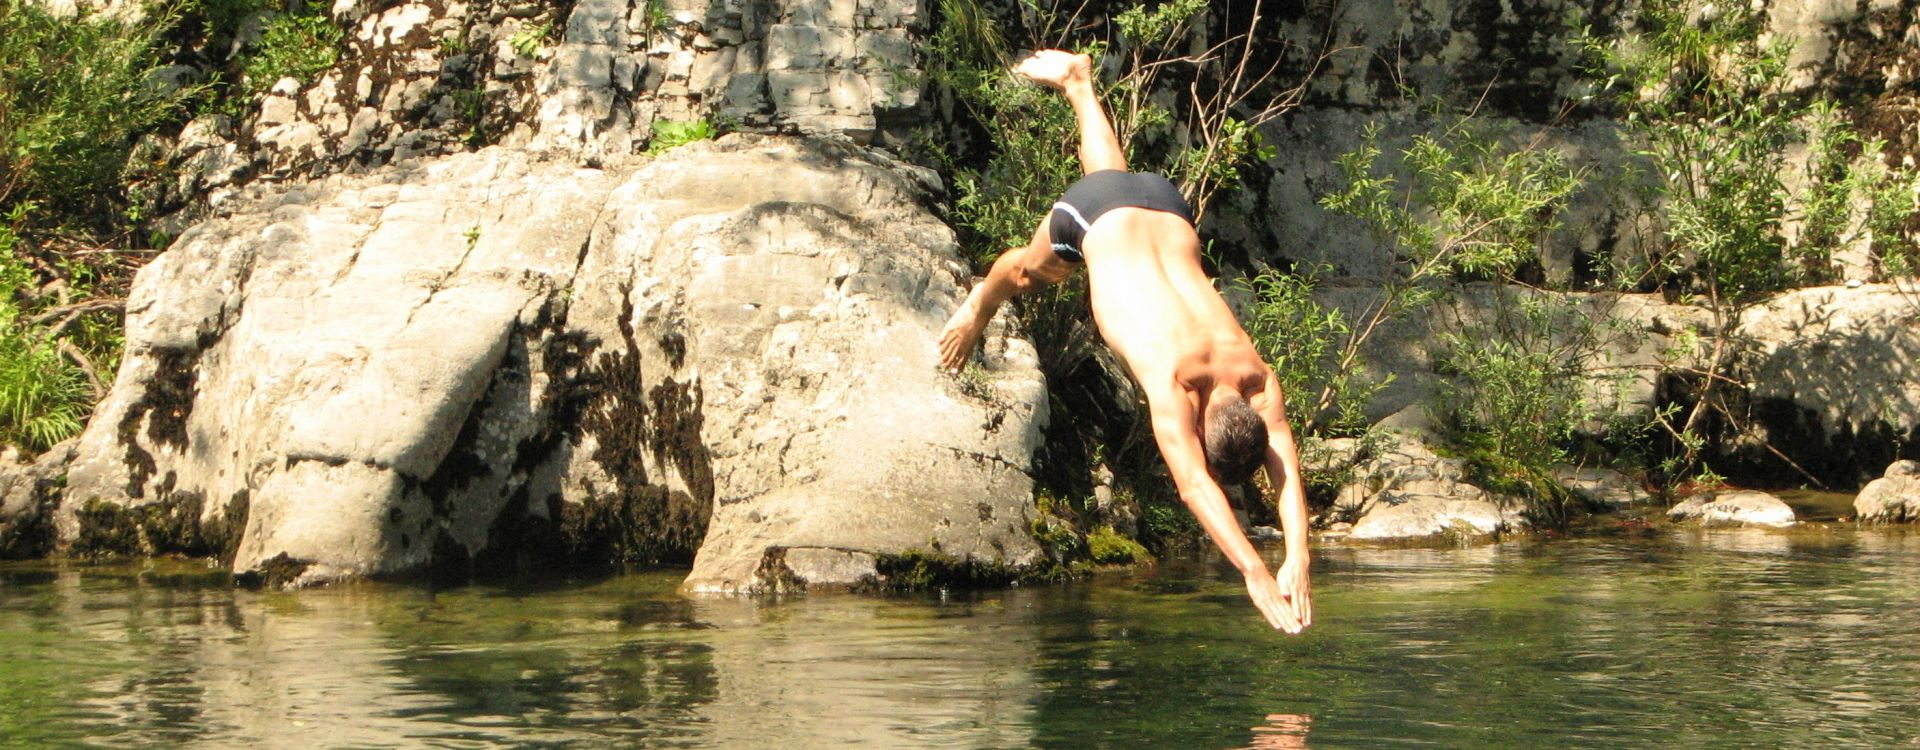 Where to cool down in Soca valley?